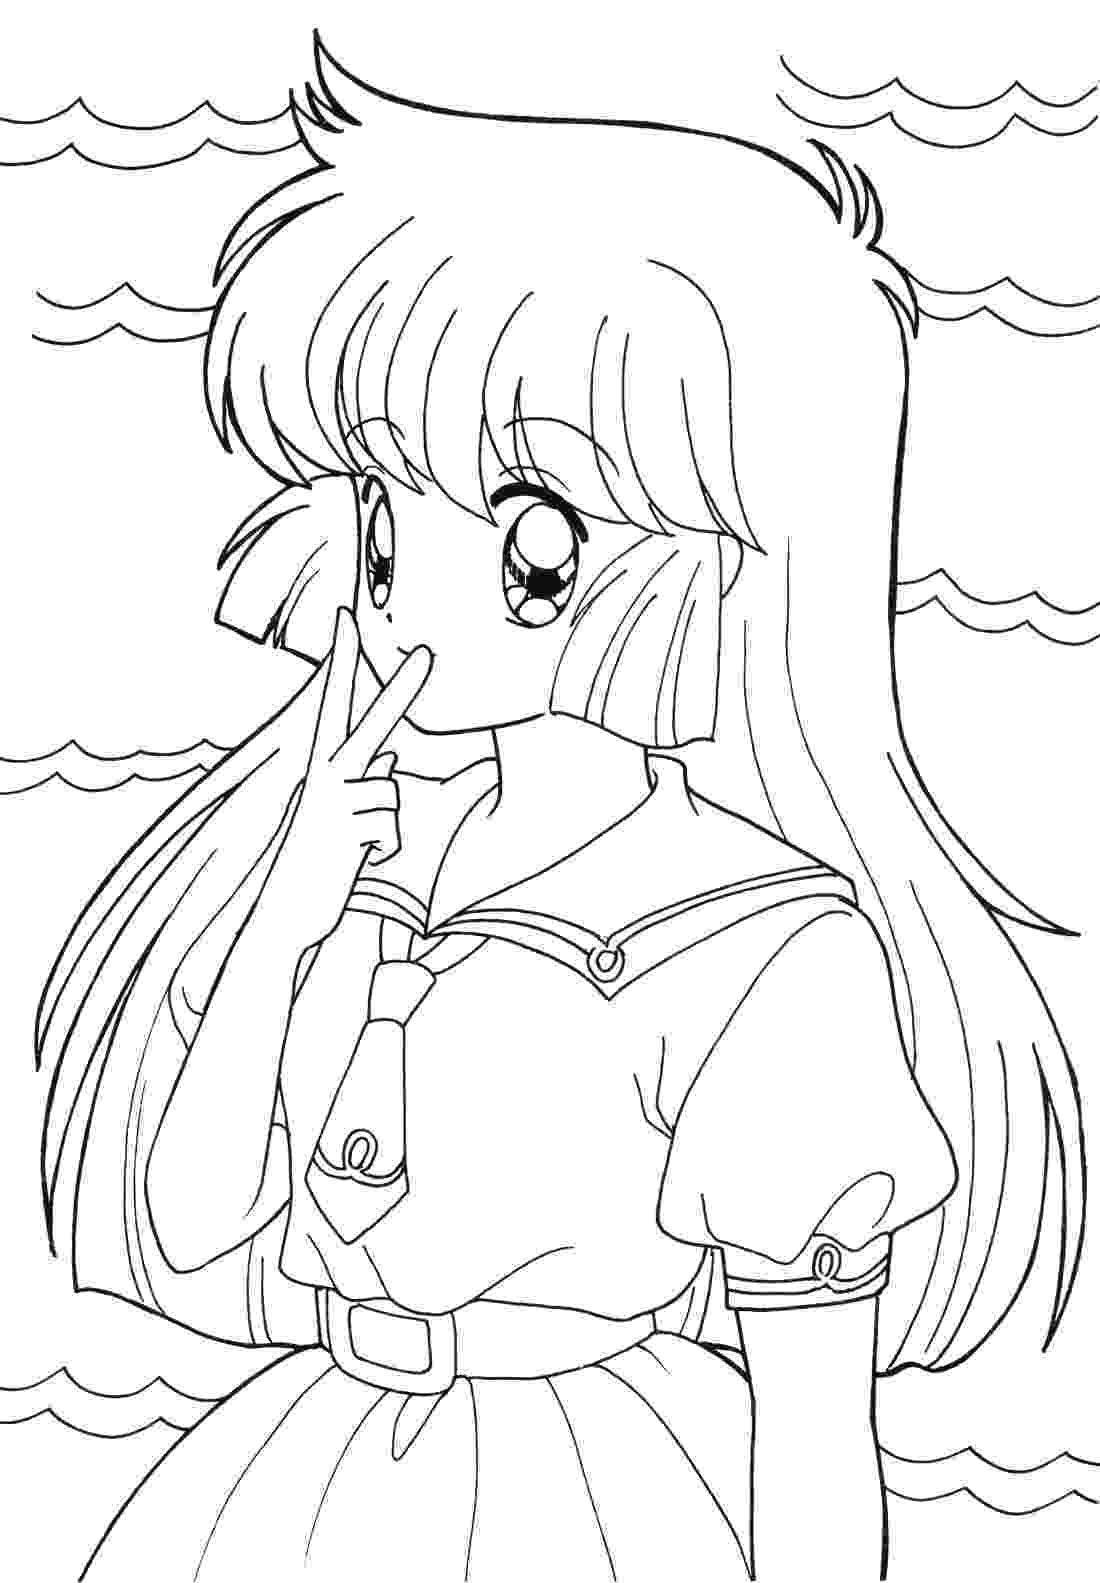 girl pictures to color and print cute girl coloring pages to download and print for free color and girl pictures to print